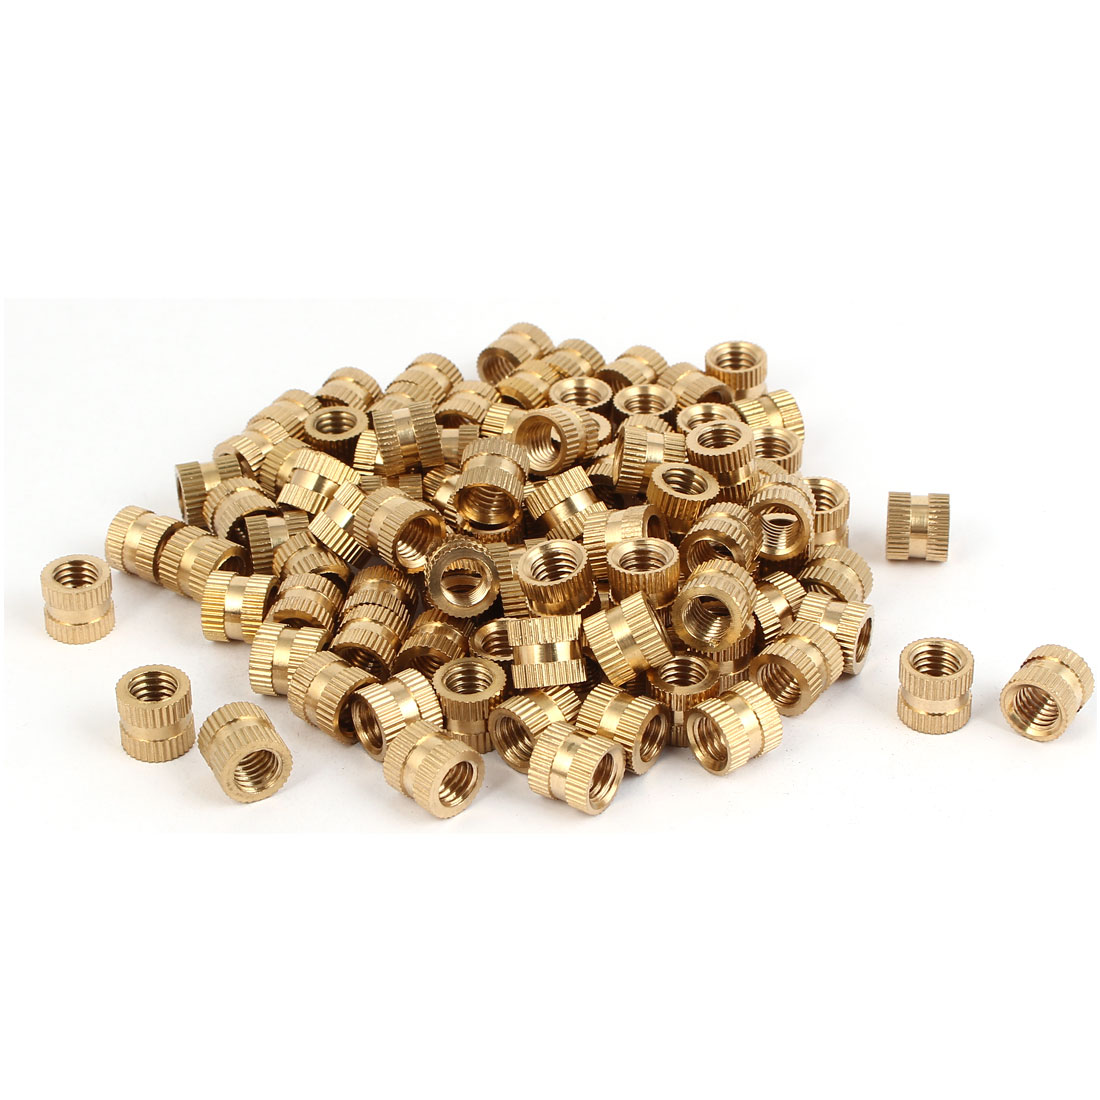 M8 x 10mm x 11mm Brass Cylinder Injection Molding Knurled Insert Nuts 100PCS